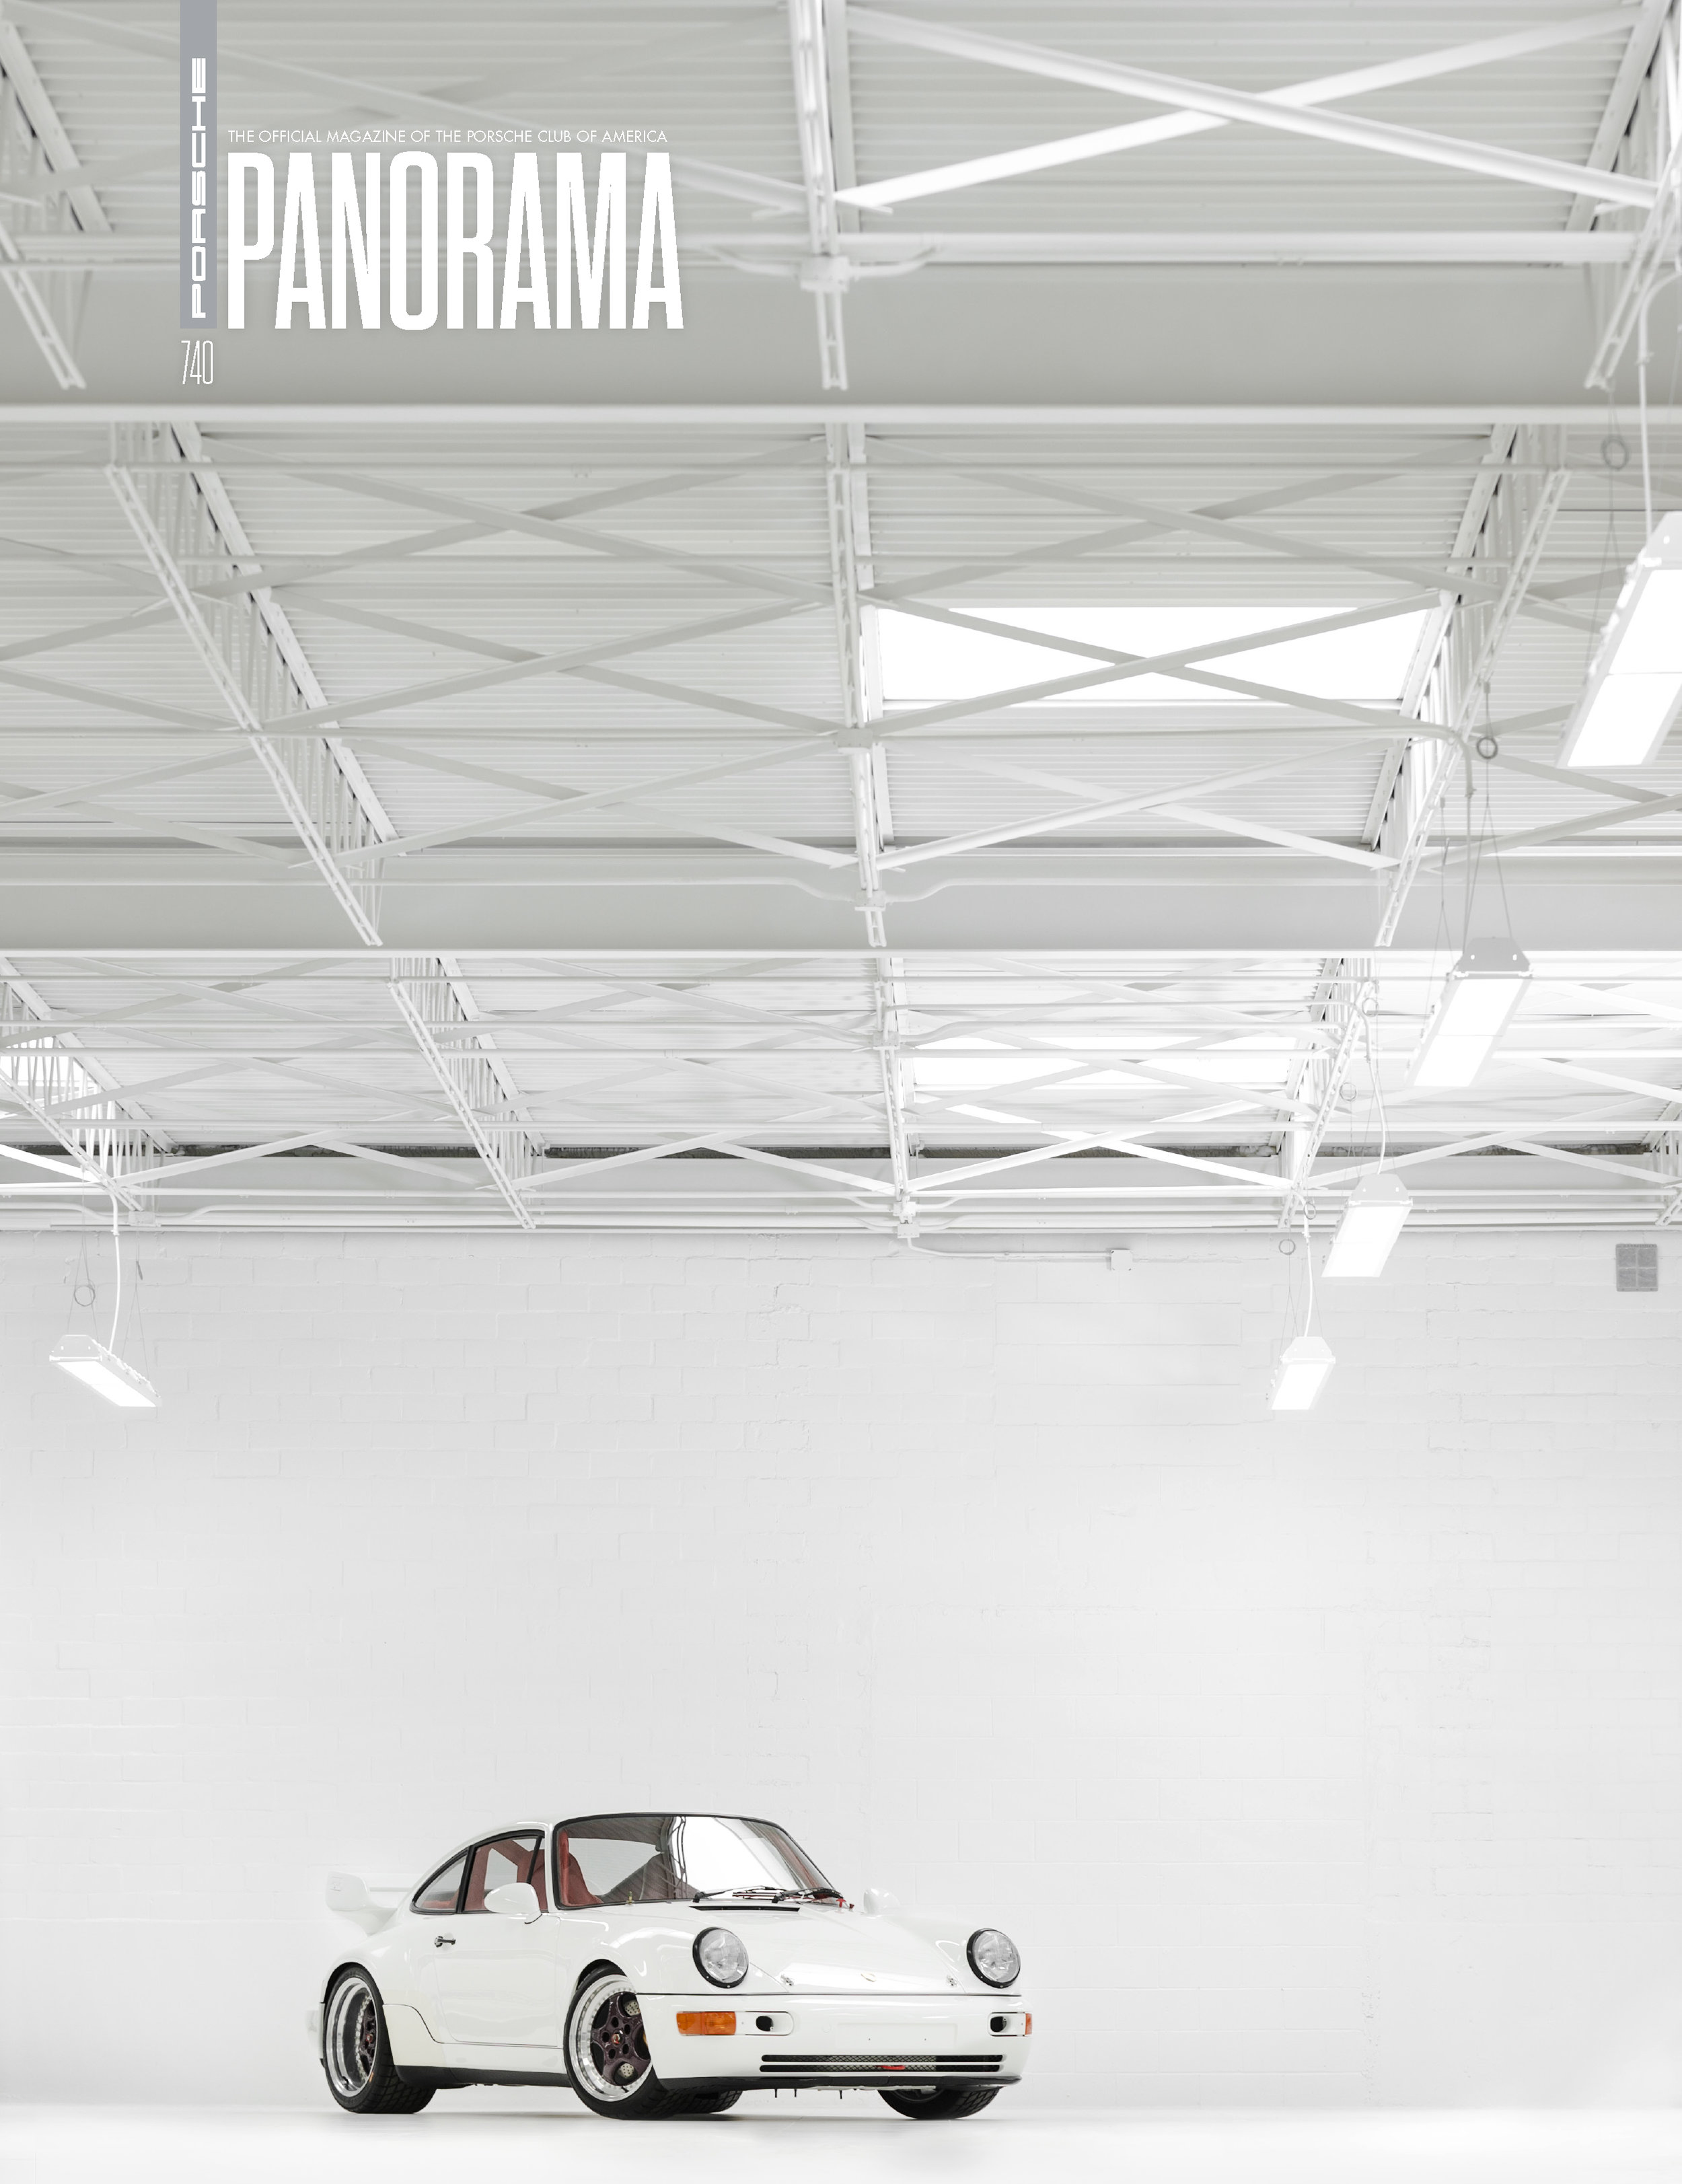 Porsche Panorama Magazine - The White Collection - Full article and more